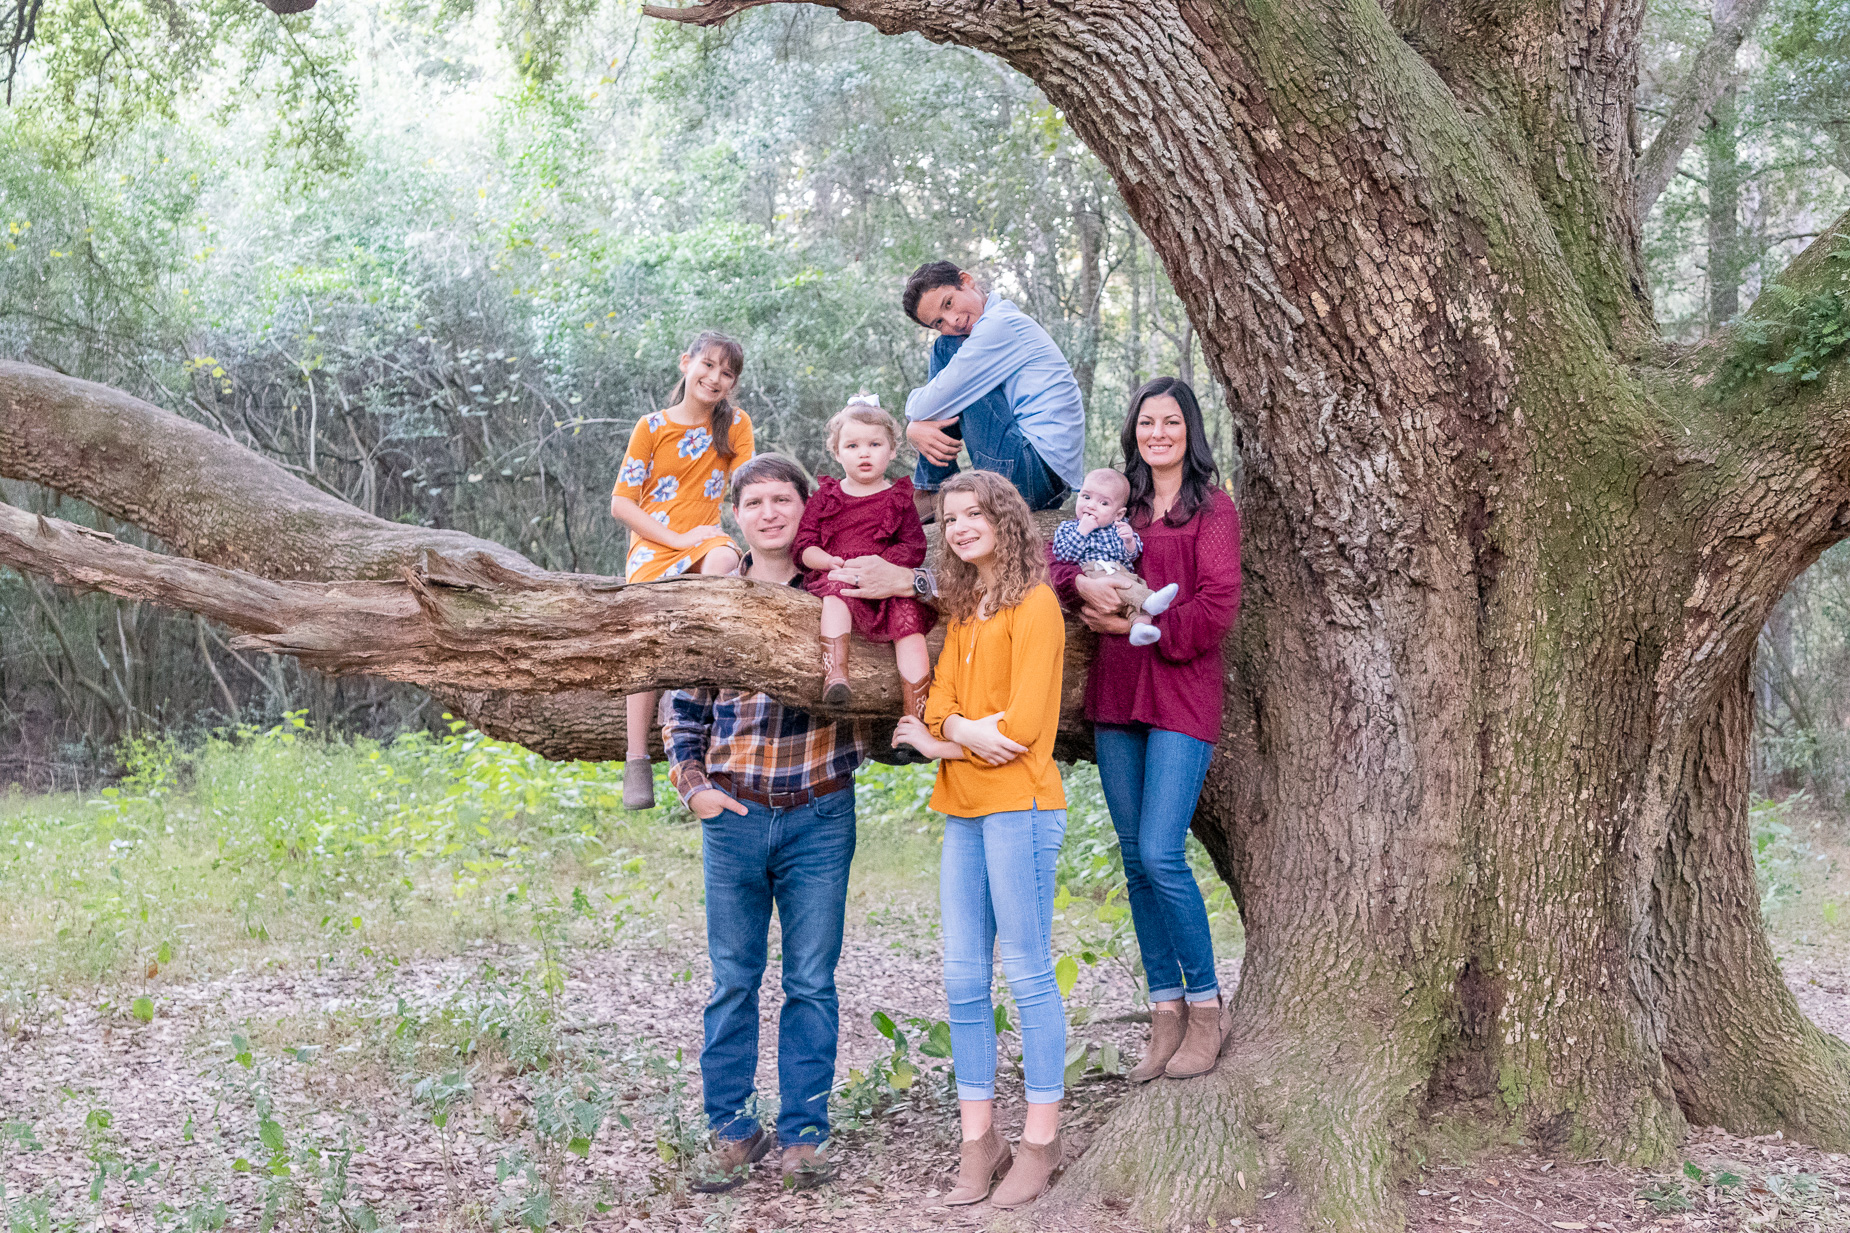 Tomball, Texas Photography | Tomball, Texas Family Photographer | Matlock Family